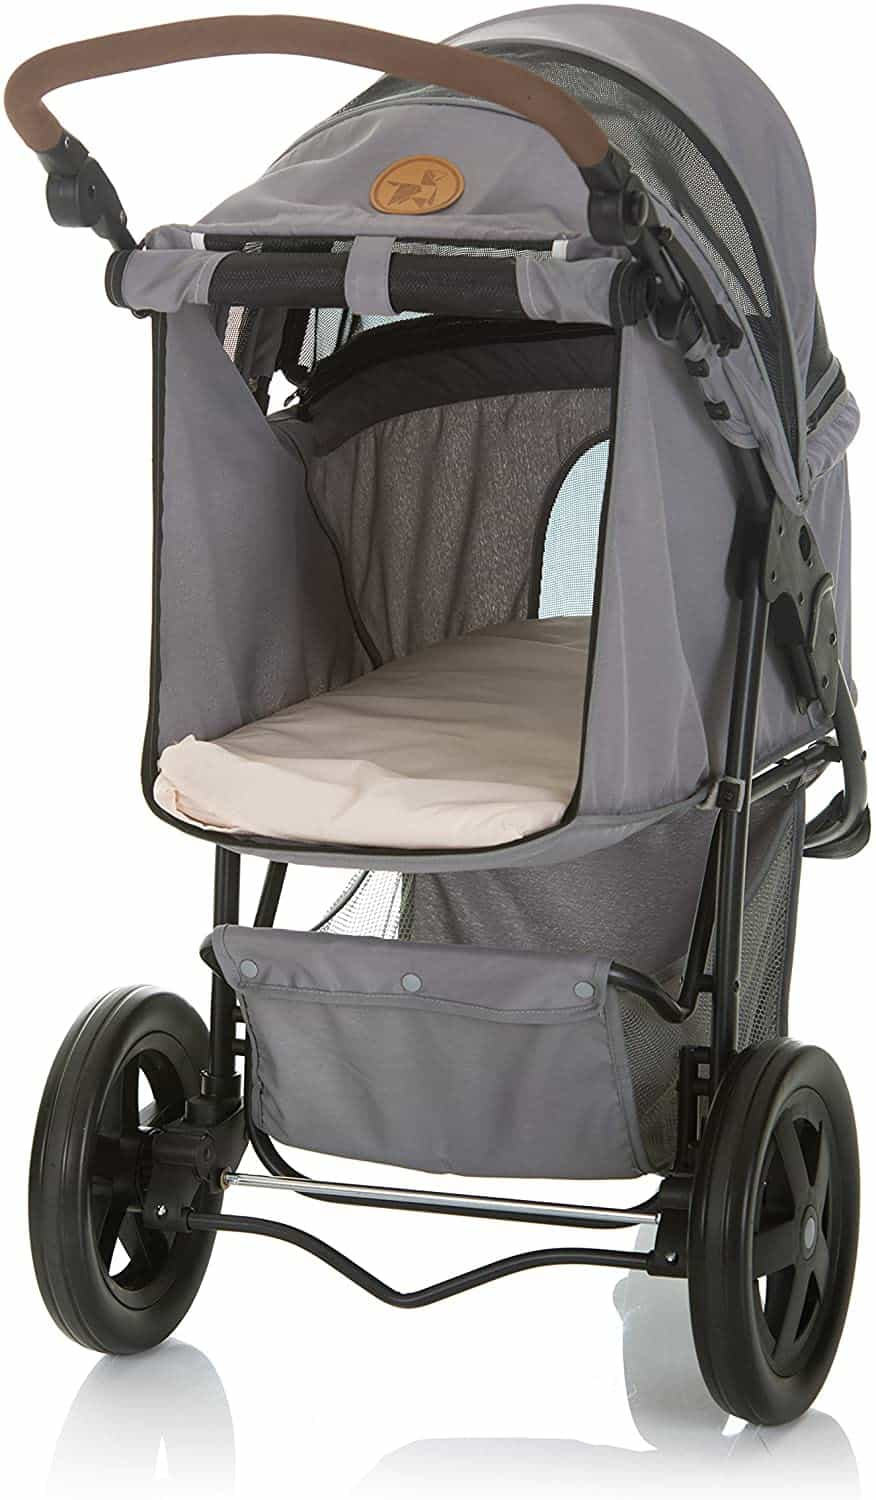 The Best Cat Stroller To Walk Your Cat in Comfort and Style 23